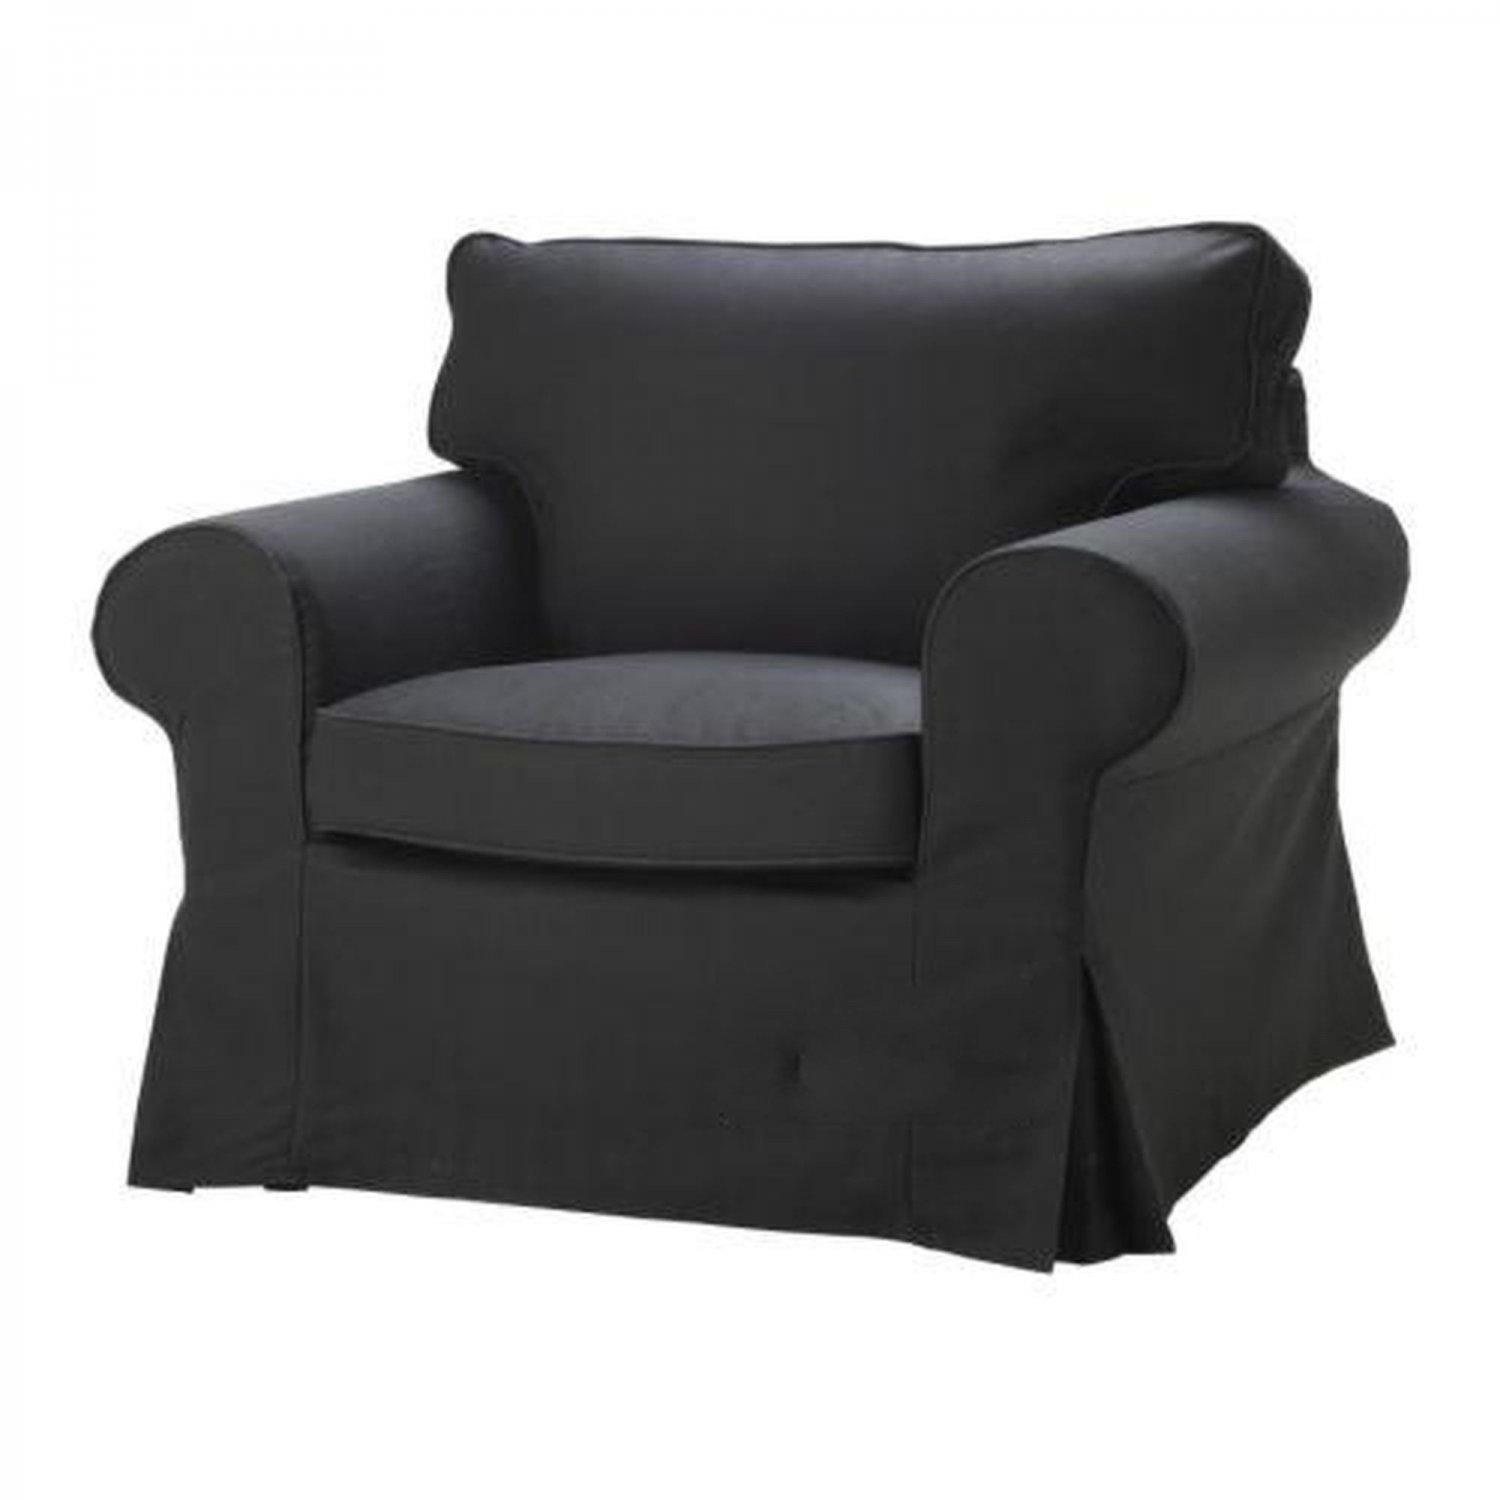 ikea tullsta chair covers uk upholstered chairs for living room ektorp armchair slipcover idemo black cover